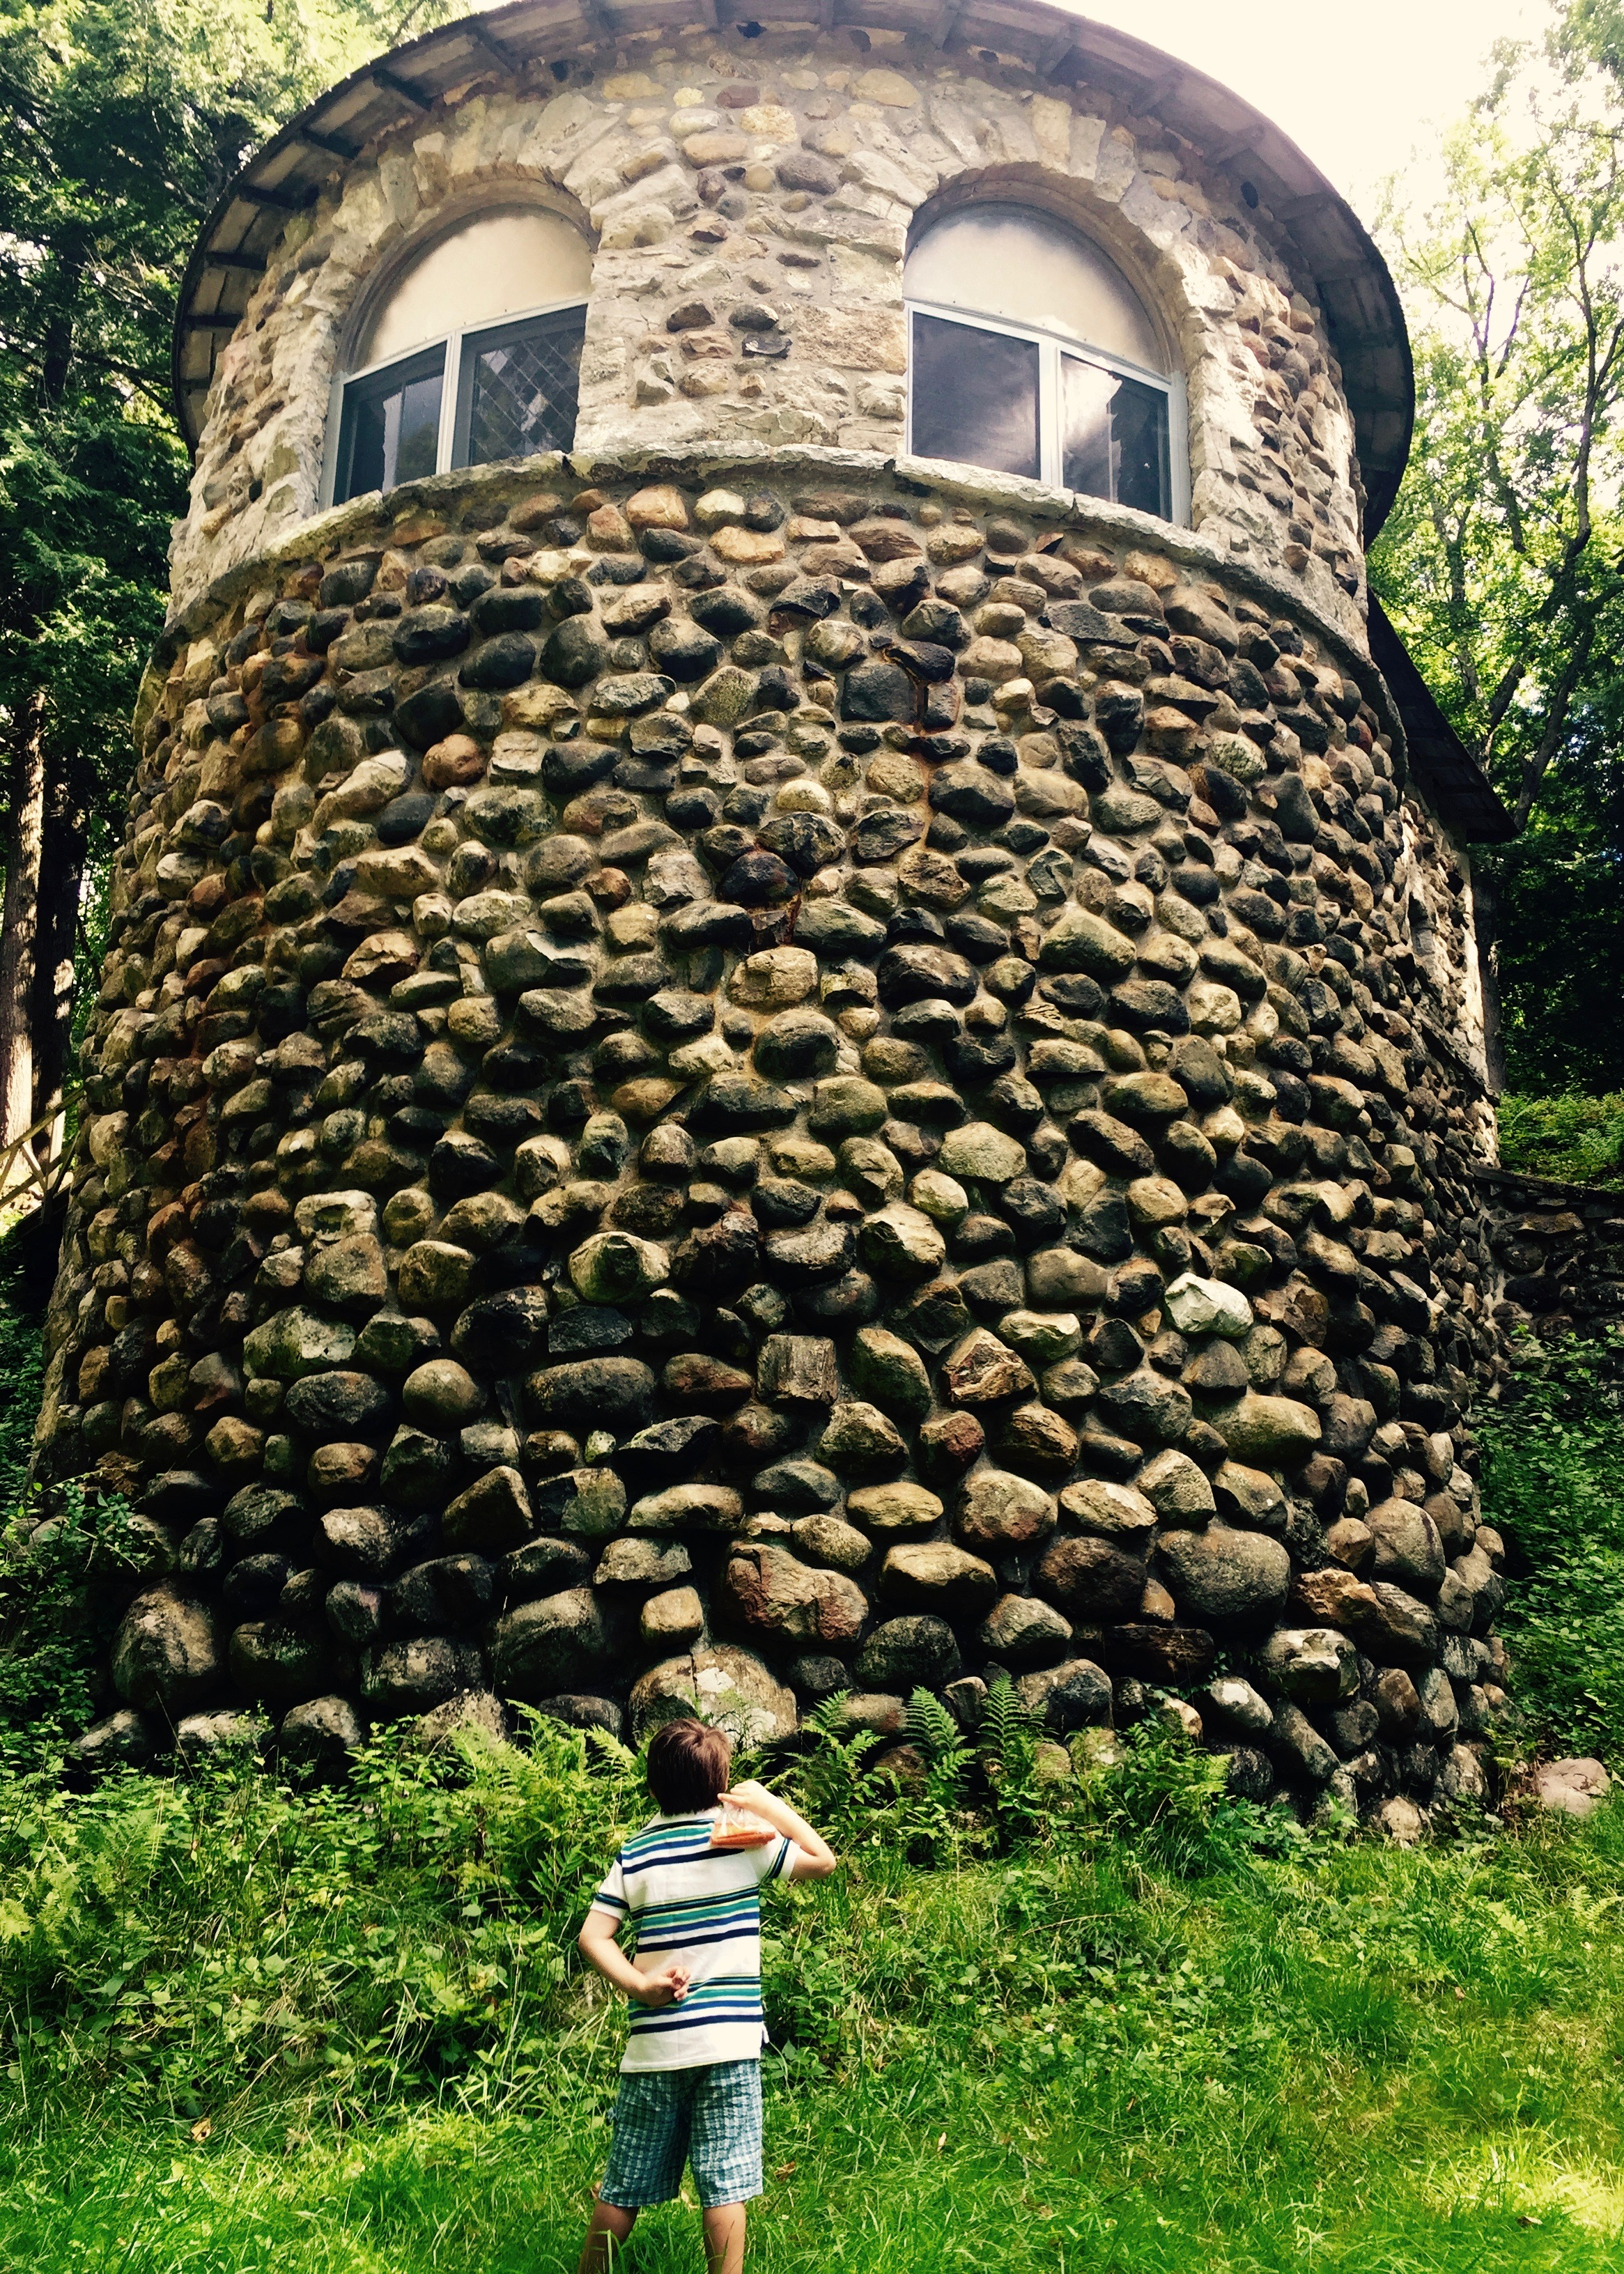 My younger son at Yaddo, Summer 2016.